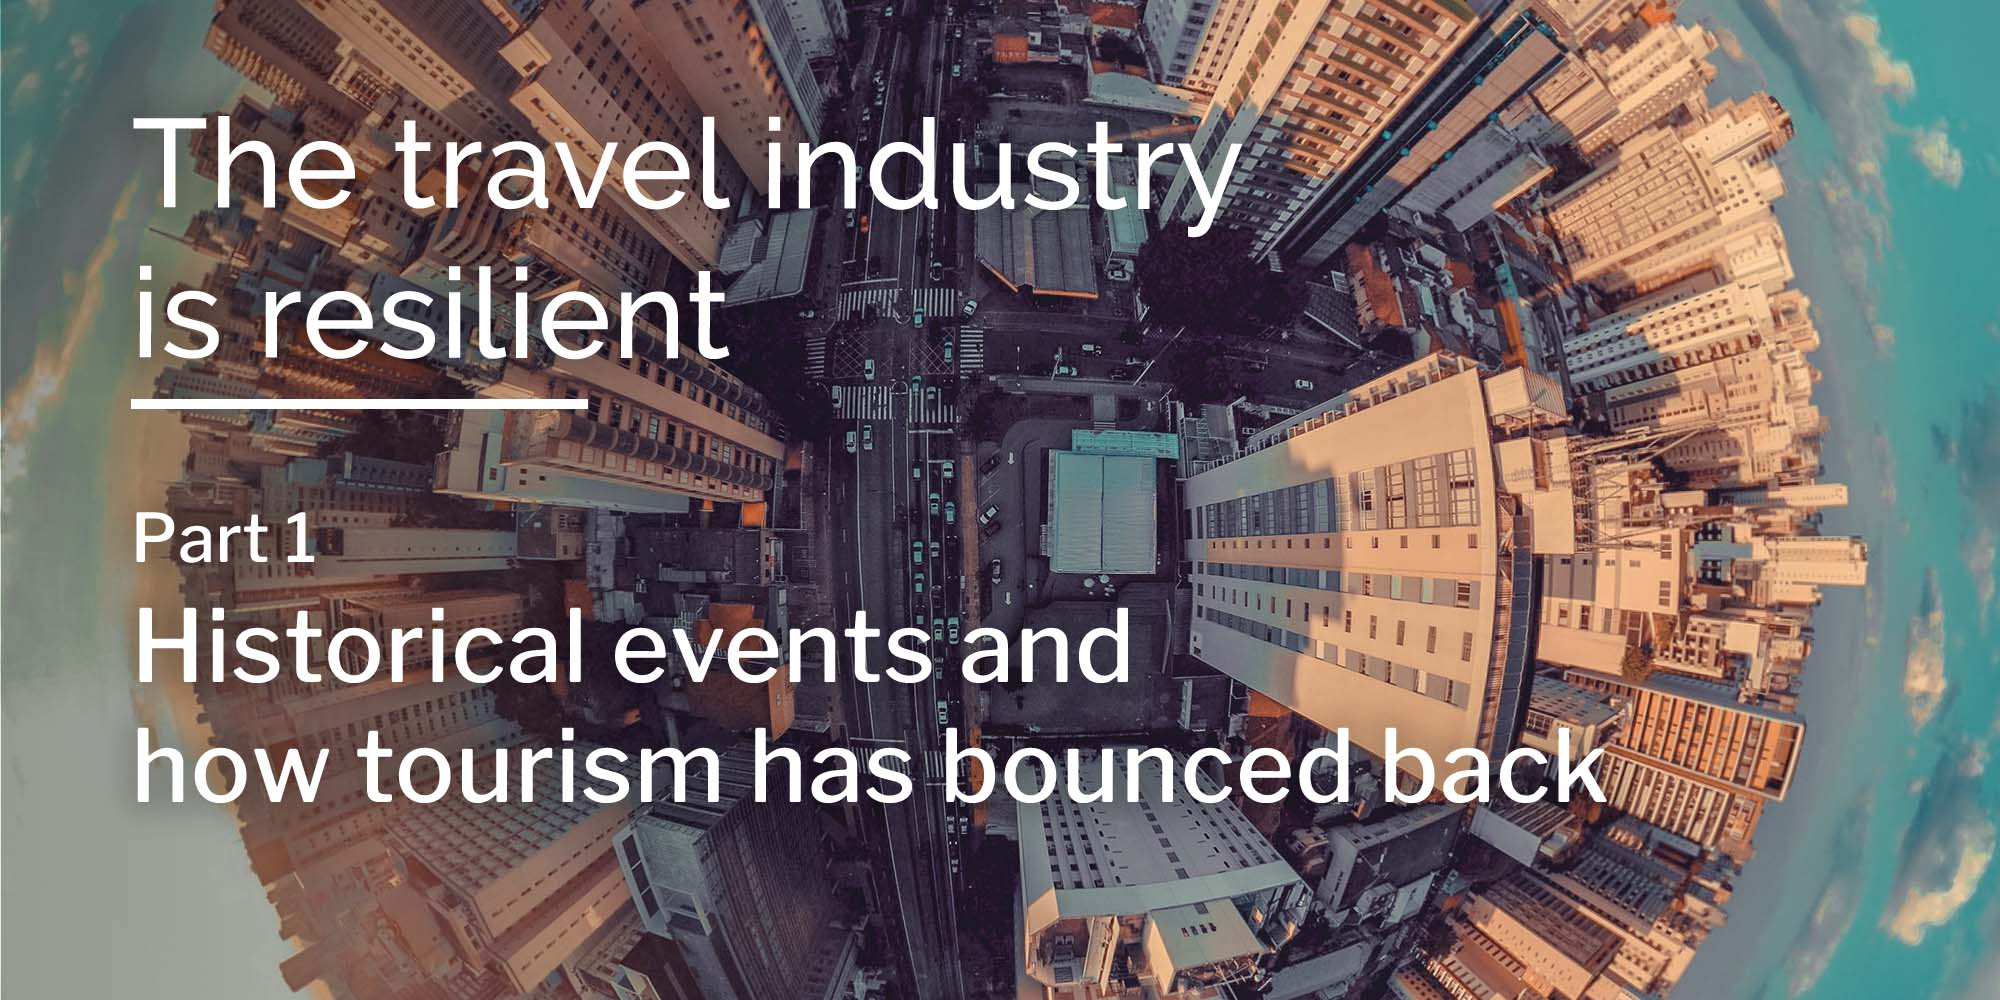 Historical events and how tourism bounced back